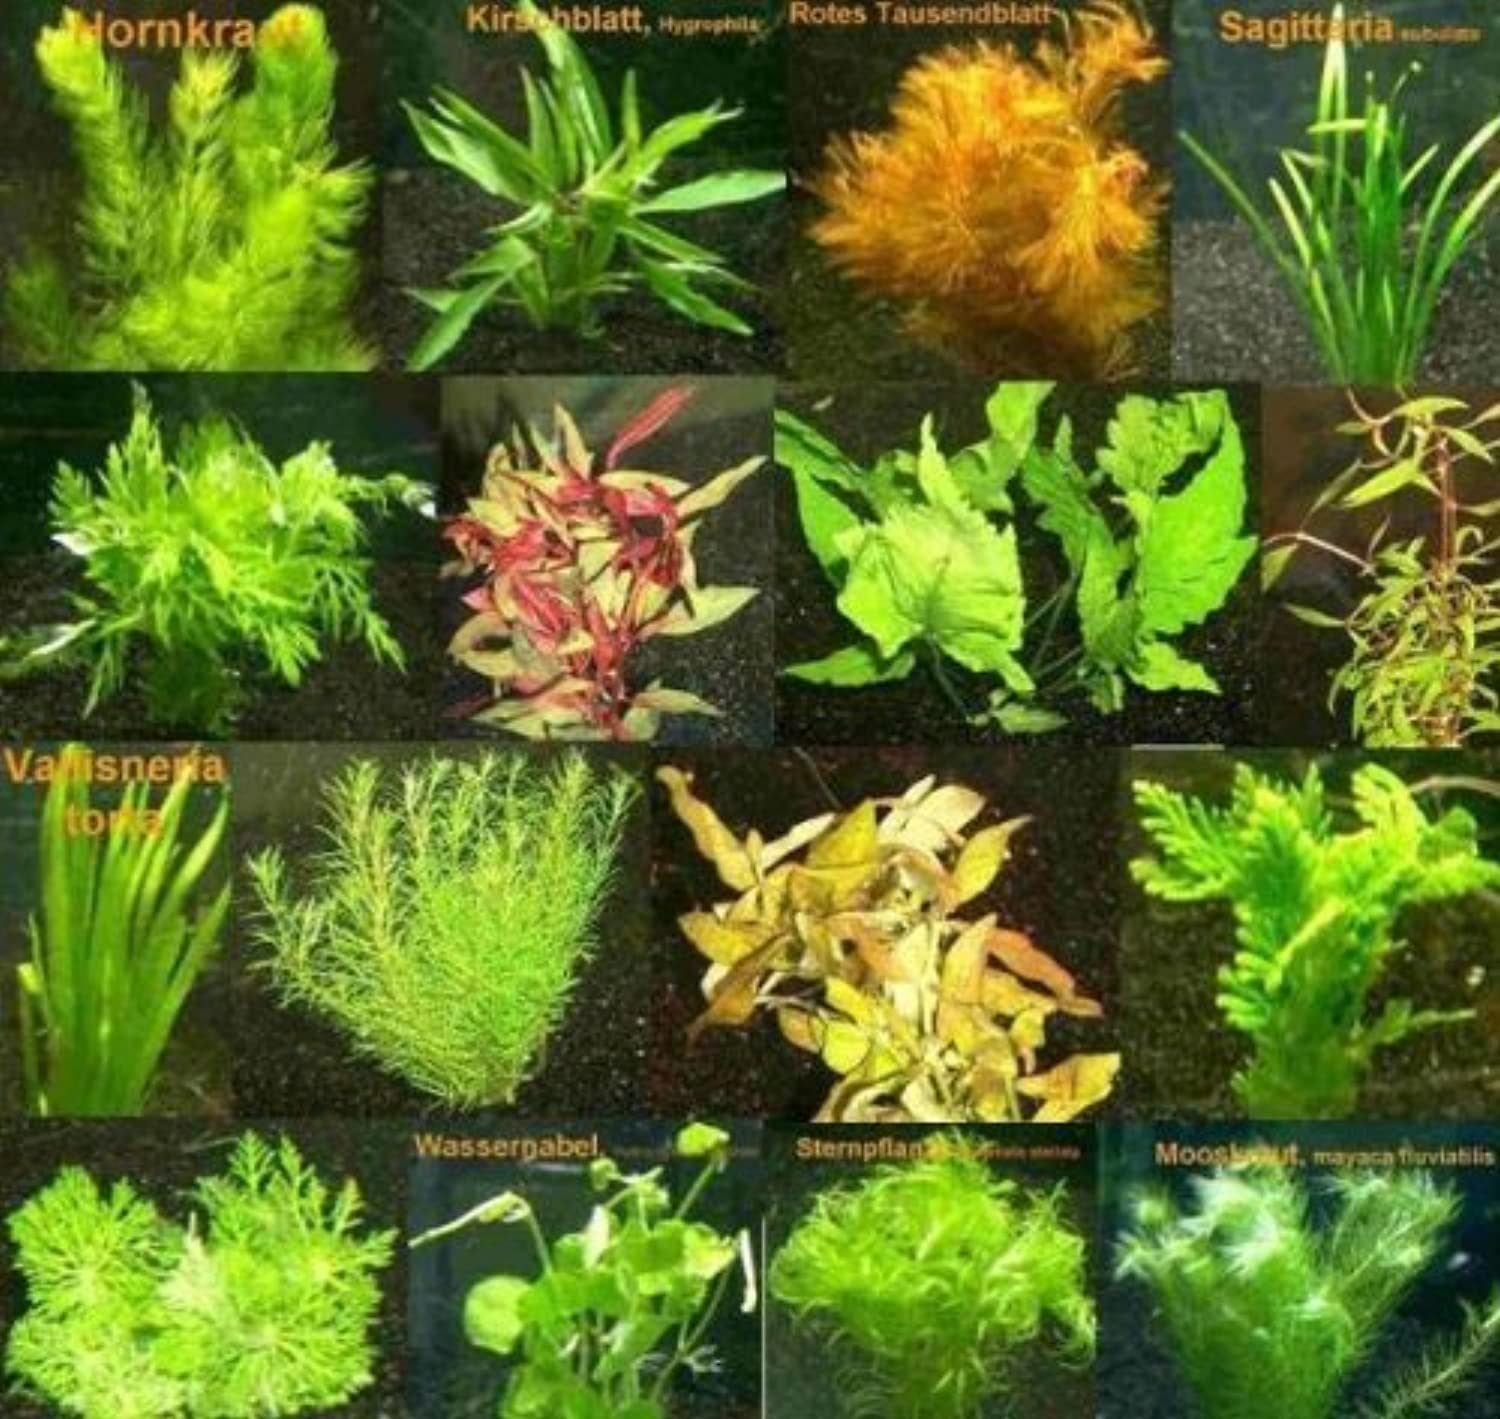 280 aquatic plants, red and green, 40 bunch